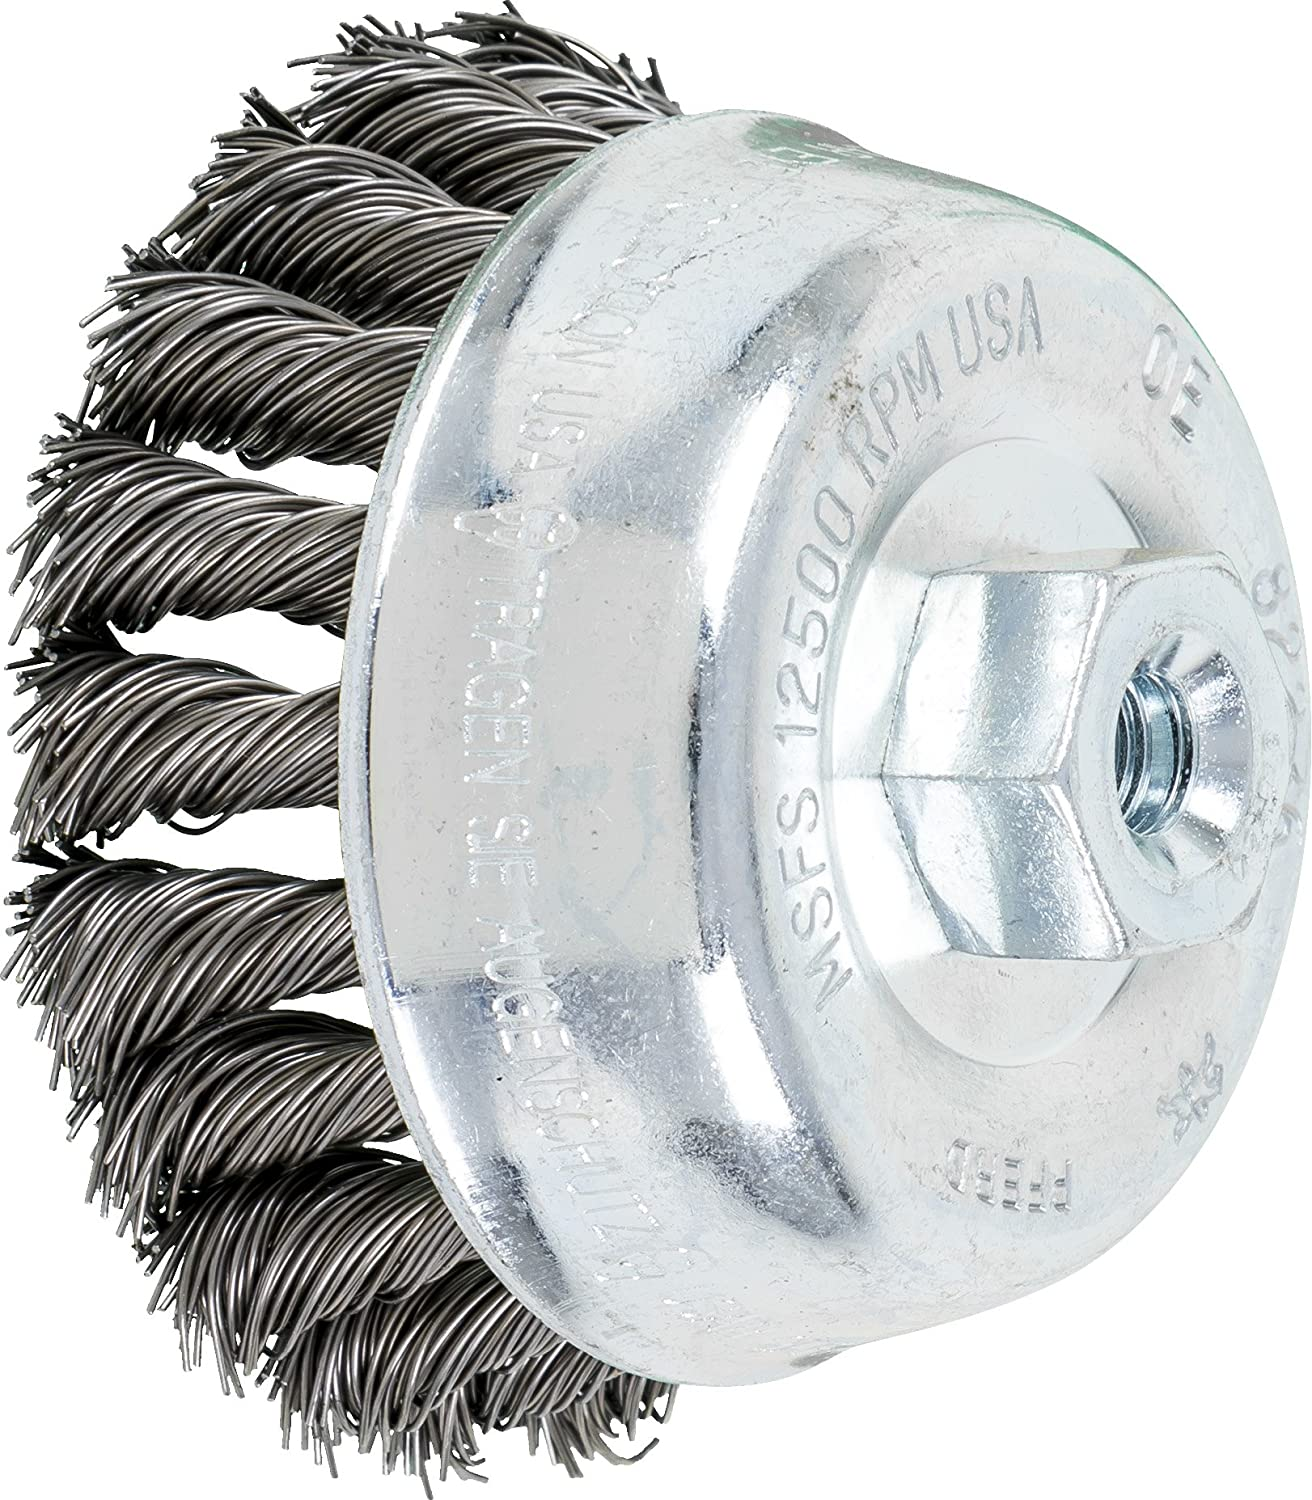 Threaded Hole 5//8-11 Thread Carbon Steel Bristles PFERD 82529 Single Row Power Knot Cup Wire Brush with External Nut and Standard Twist 7000 Maximum RPM 5 Diameter 0.023 Wire Size